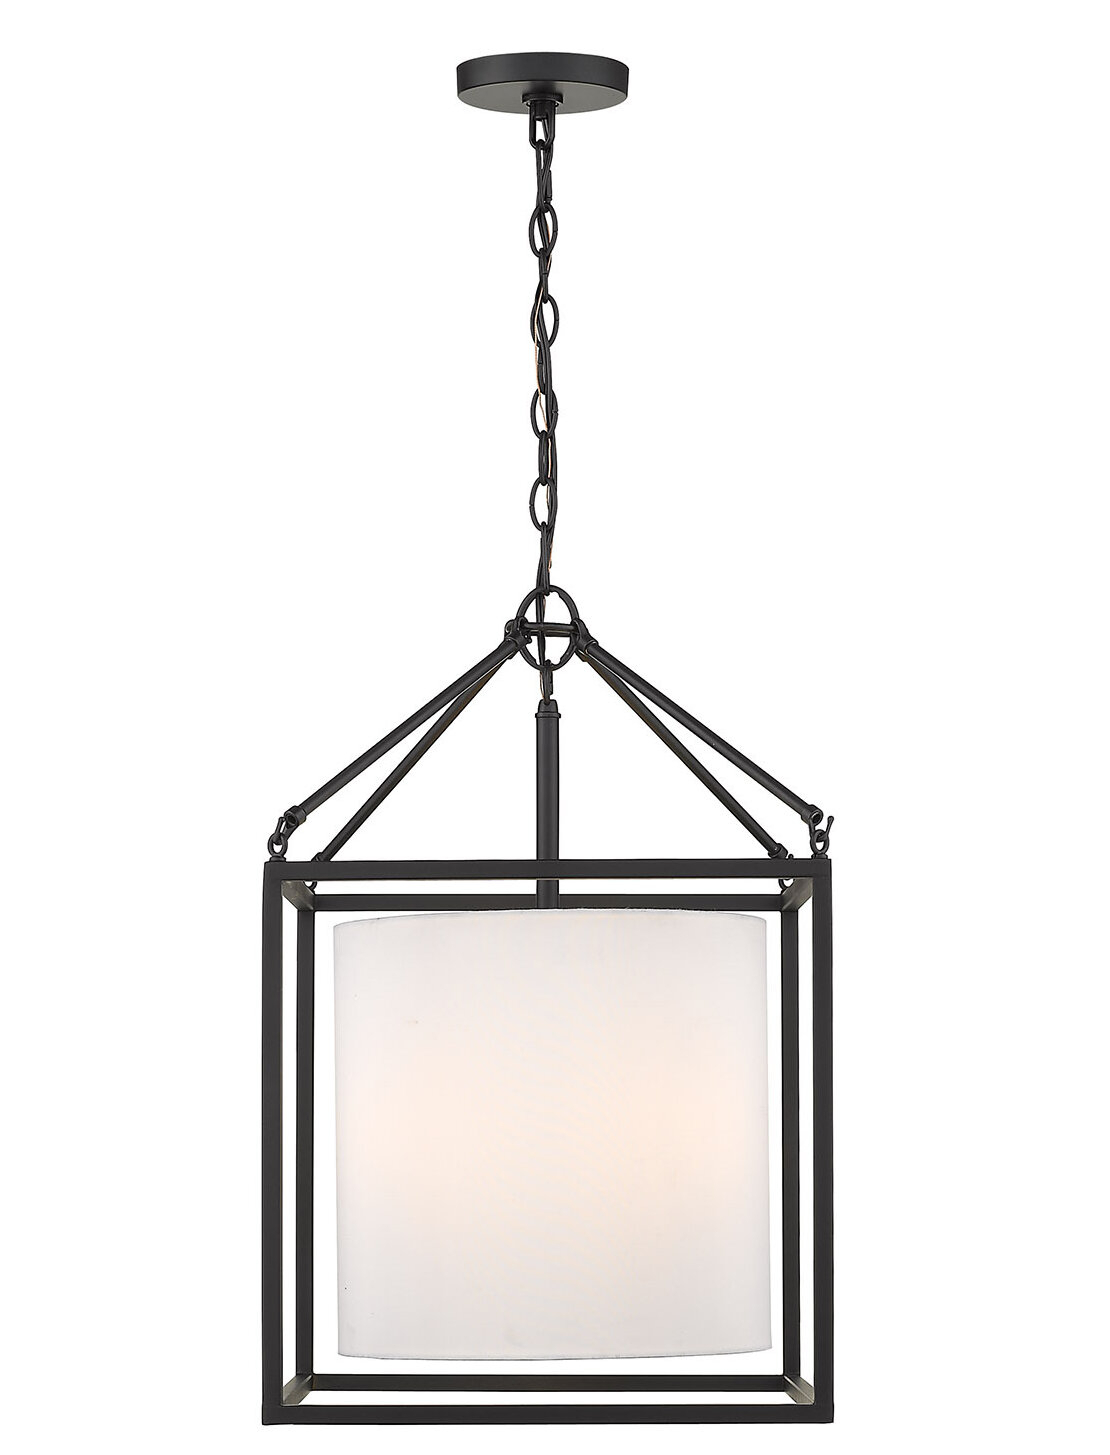 Dinapoli 3 Light Lantern Chandelier Regarding Louanne 3 Light Lantern Geometric Pendants (Photo 7 of 30)